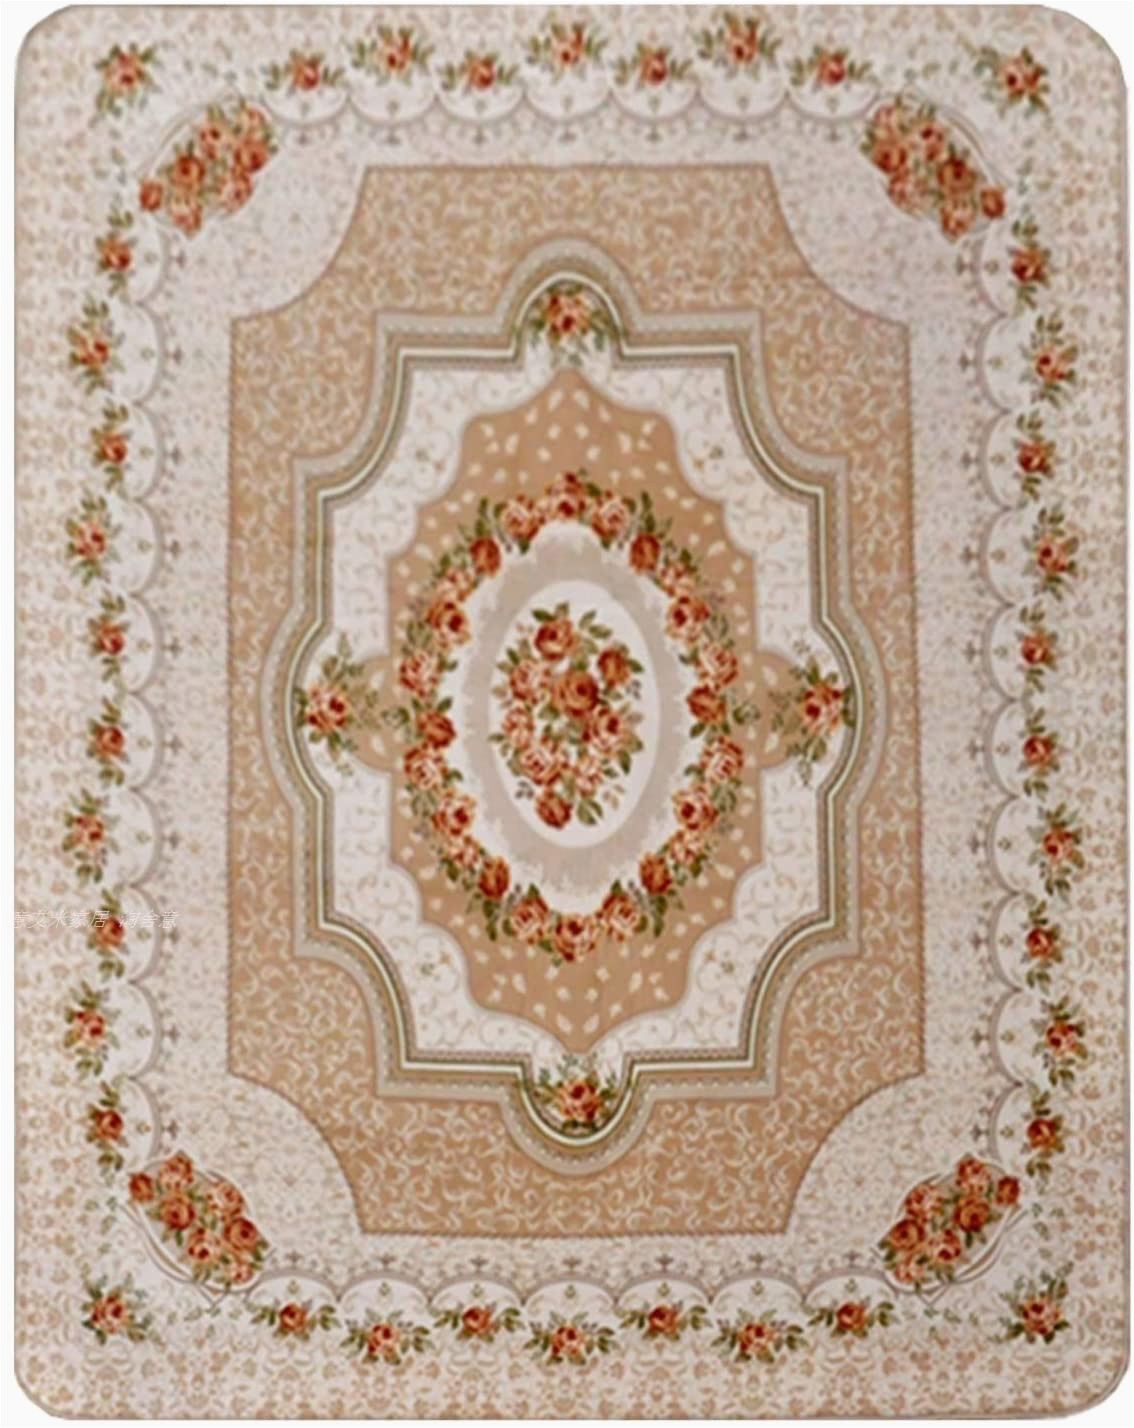 Roses Department Store area Rugs Wolala Home Coral Velvet Beige Roses Livingroom Carpet Washable Non Slip Bedroom Carpet solid Home Decorator Floor Rug Baby Crawling Mats 4 6x6 6